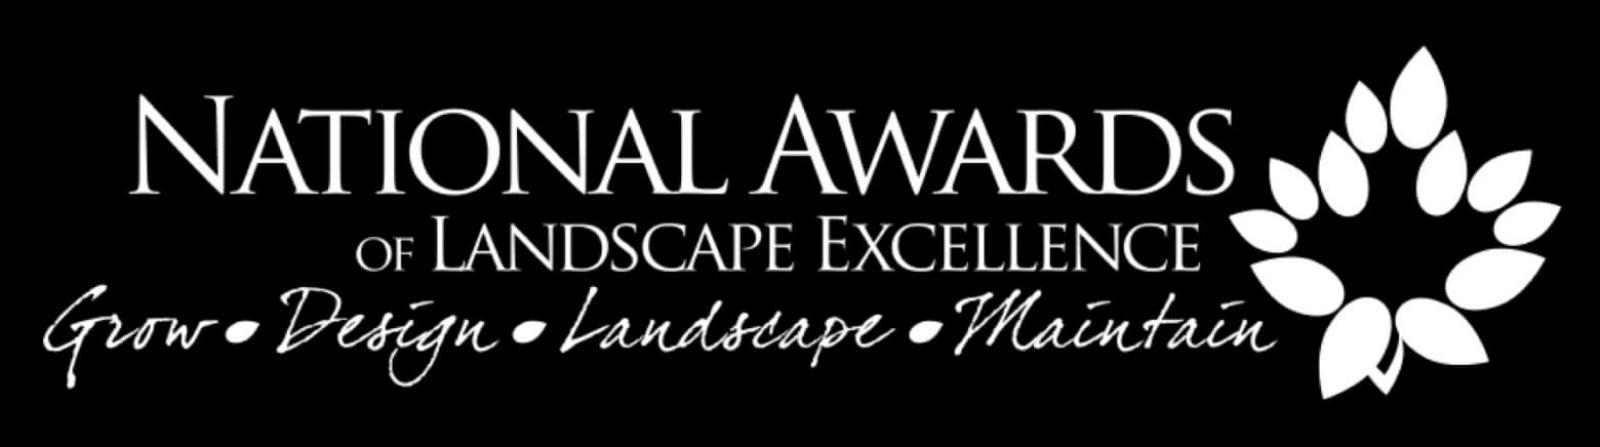 National landscape award winners announced for 2020